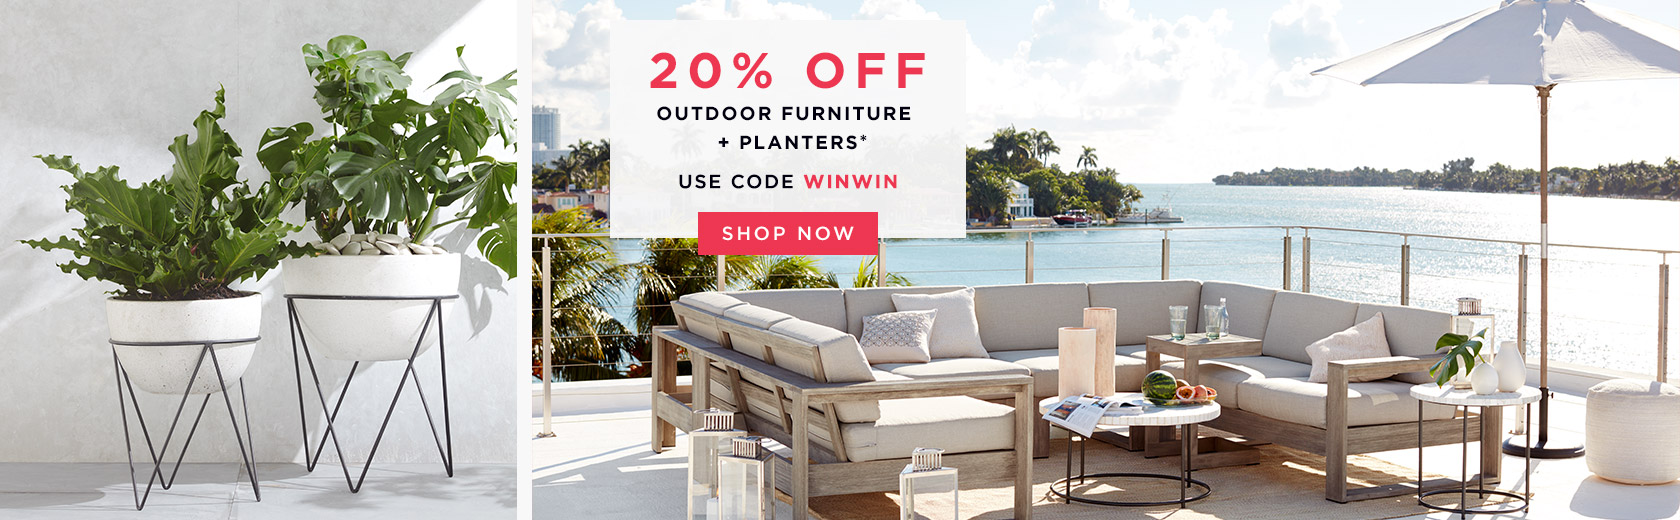 20% Off Outdoor Furniture + Planters. Use Code WINWIN